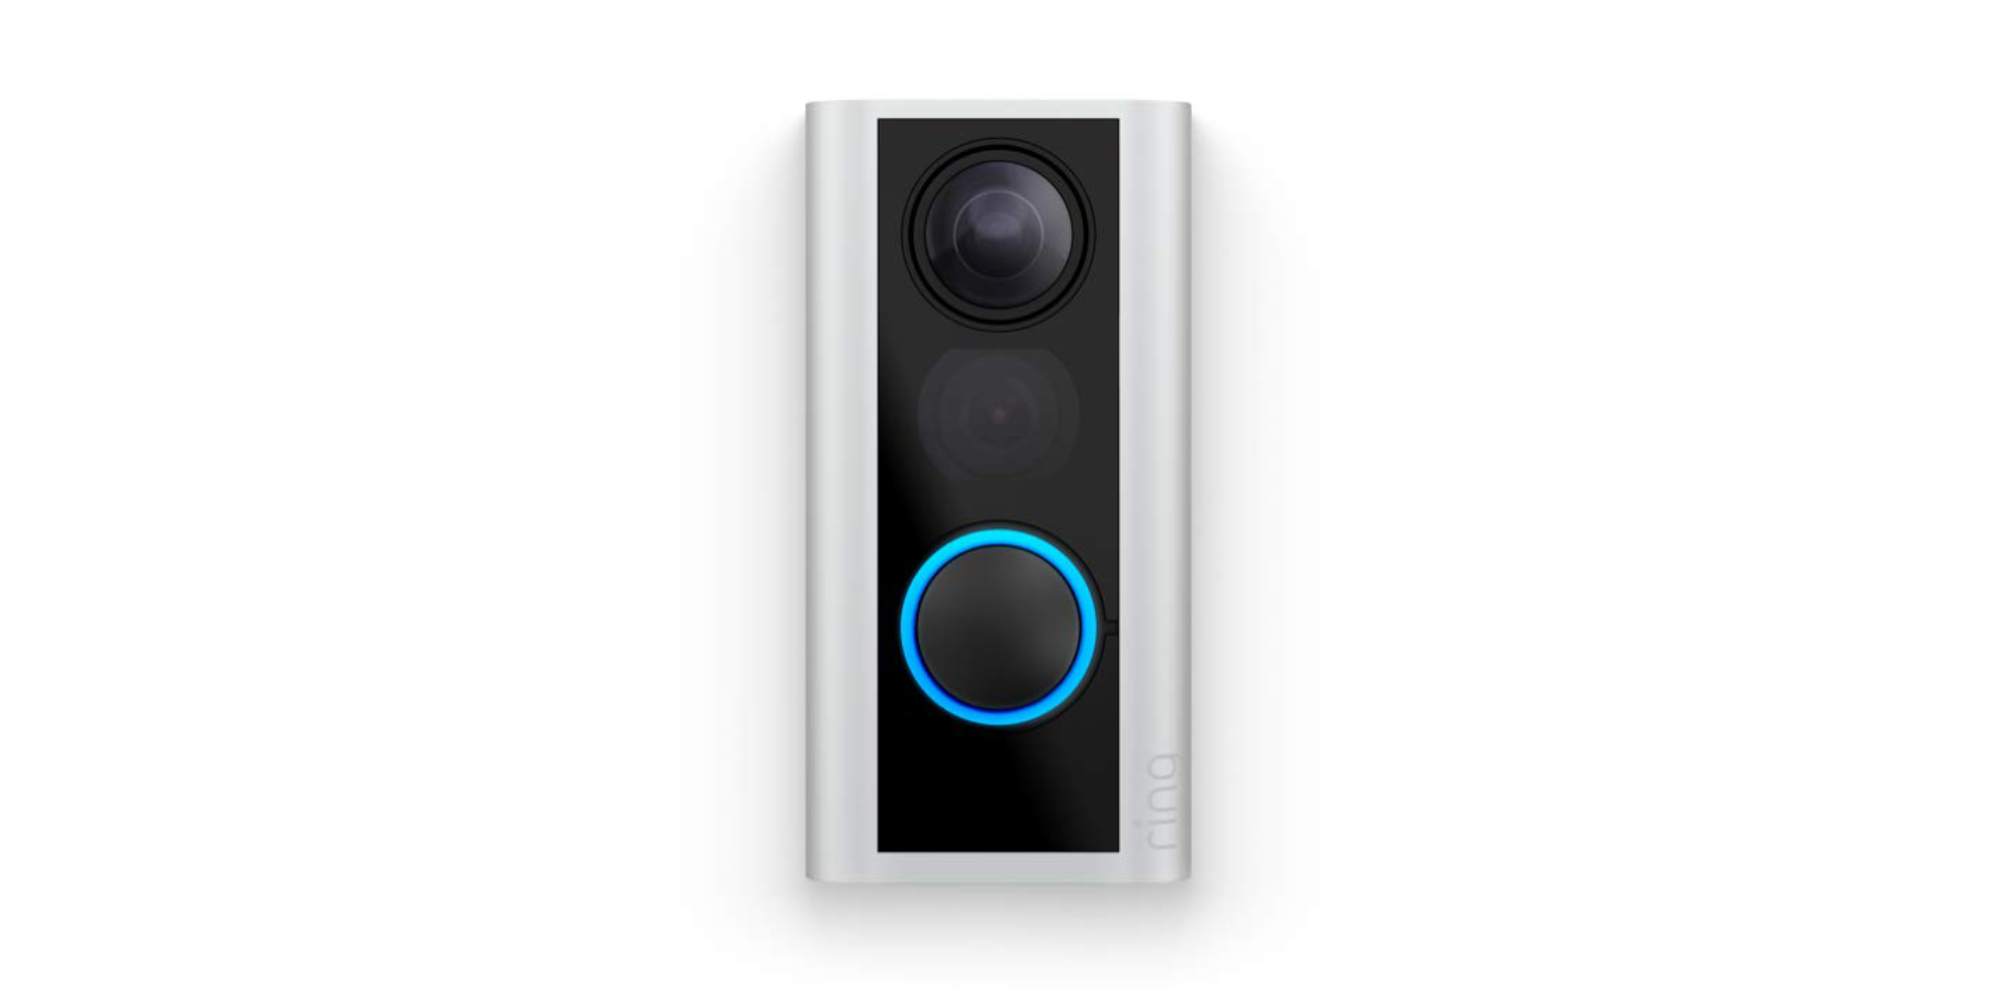 Ring's Peephole Cam is within $4 of its all-time low at $99 shipped ($100 off) - 9to5Toys